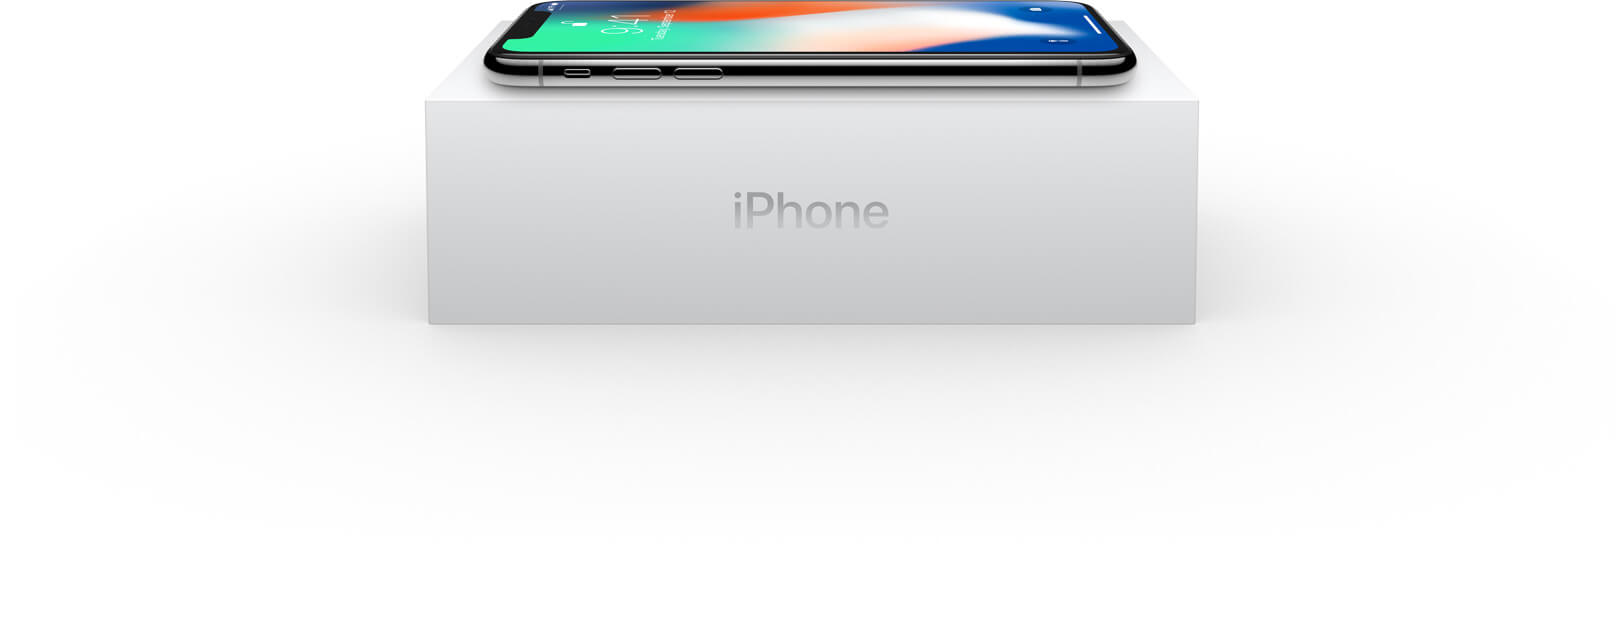 iphone x featured